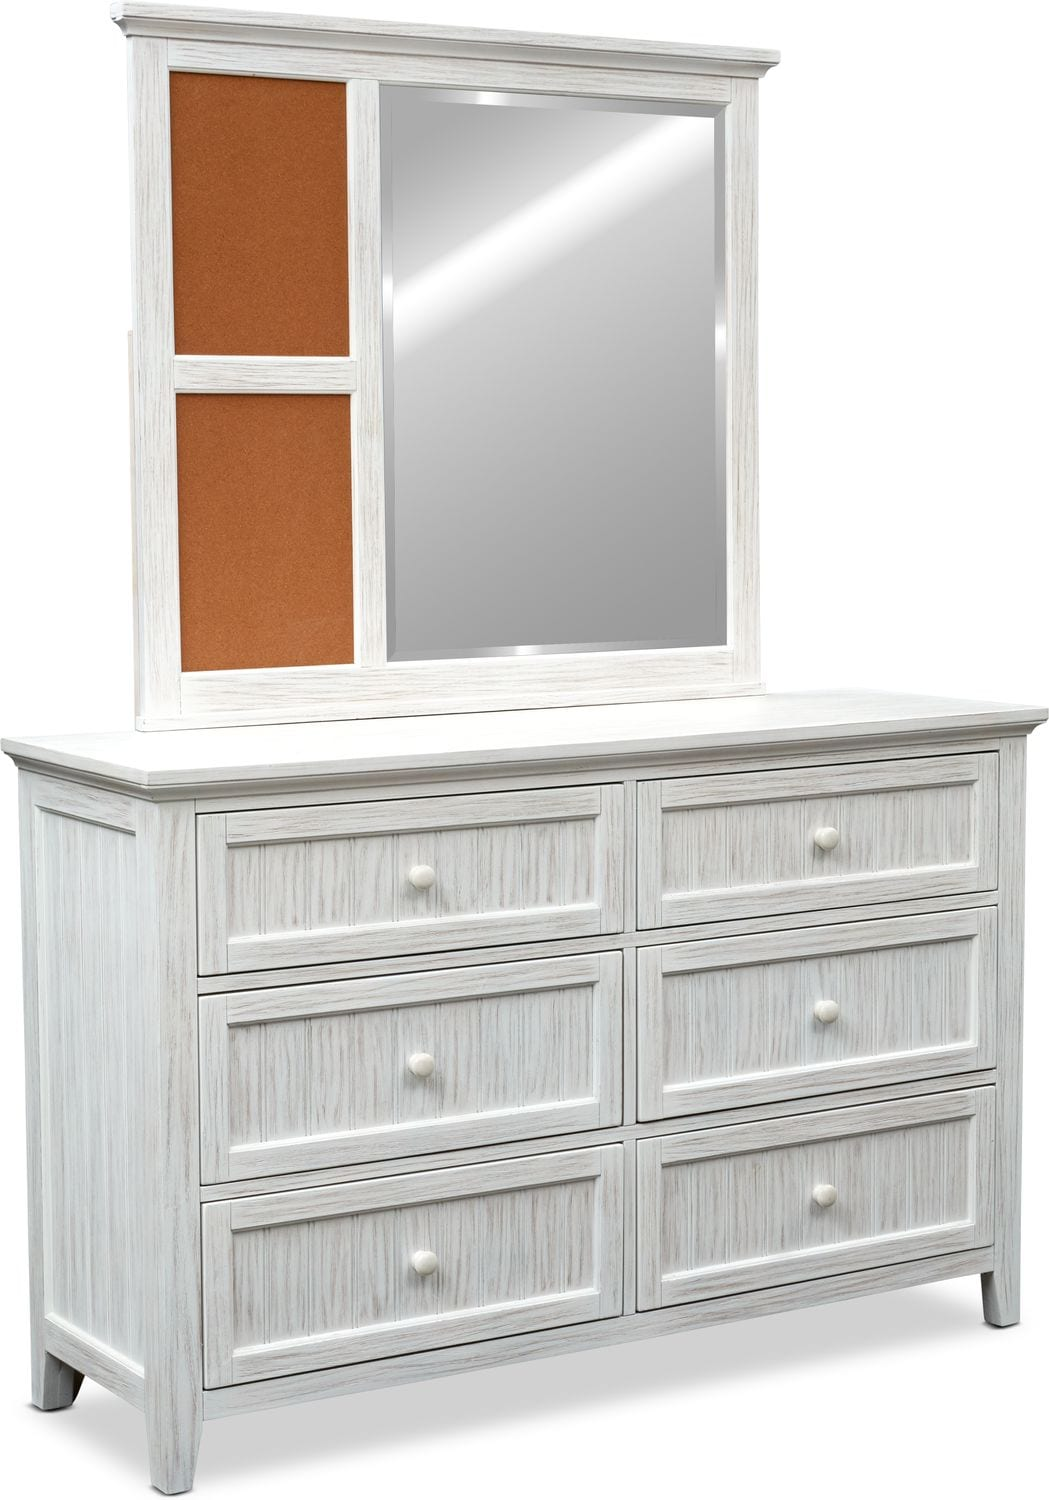 Kids Furniture - Sidney Dresser and Mirror - White